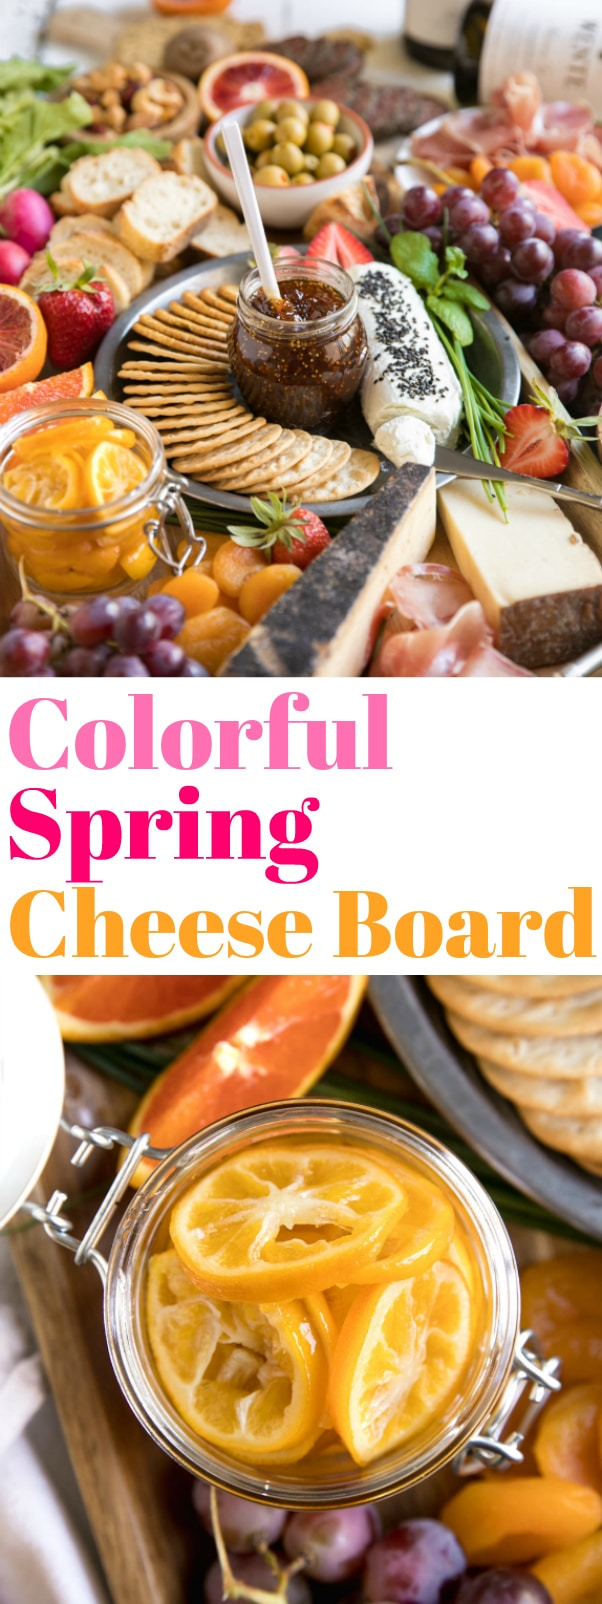 Colorful Spring Cheese Board. Welcome spring with this easy and colorful Spring Cheese Board complete with colorful fruits, yummy cheeses, salty meats, crackers, candied Meyer lemons, chocolate and delicious wines via @theforkedspoon #cheeseboard #springcelebrations #candiedlemons #cheeseplate  For this recipe and more visit,https://theforkedspoon.com/